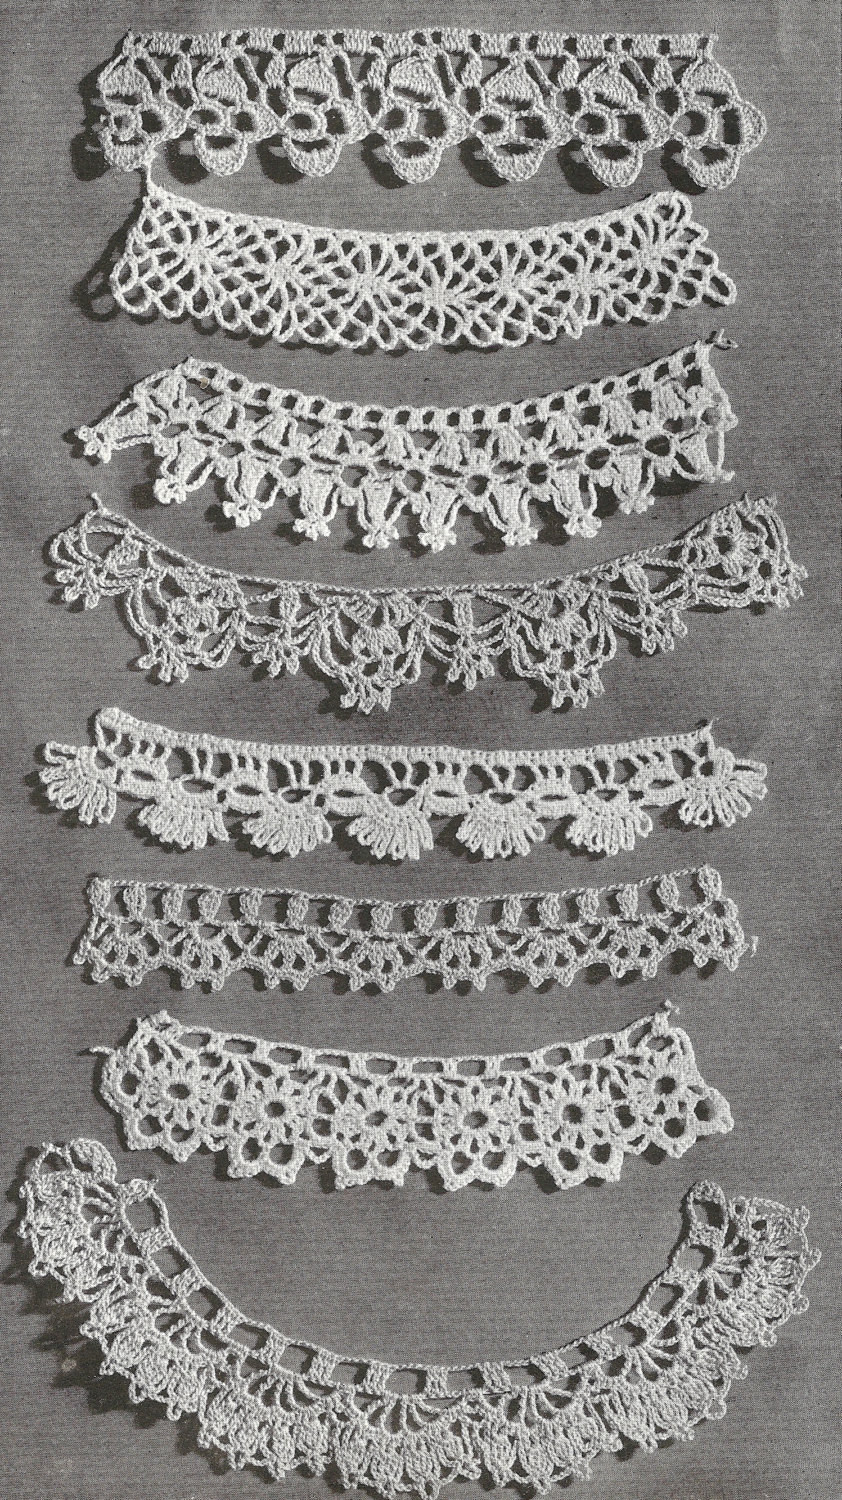 Awesome 1940 Lace Edgings Vintage Crochet Pattern Crochet Lace Edging Pattern Of Amazing 40 Photos Crochet Lace Edging Pattern